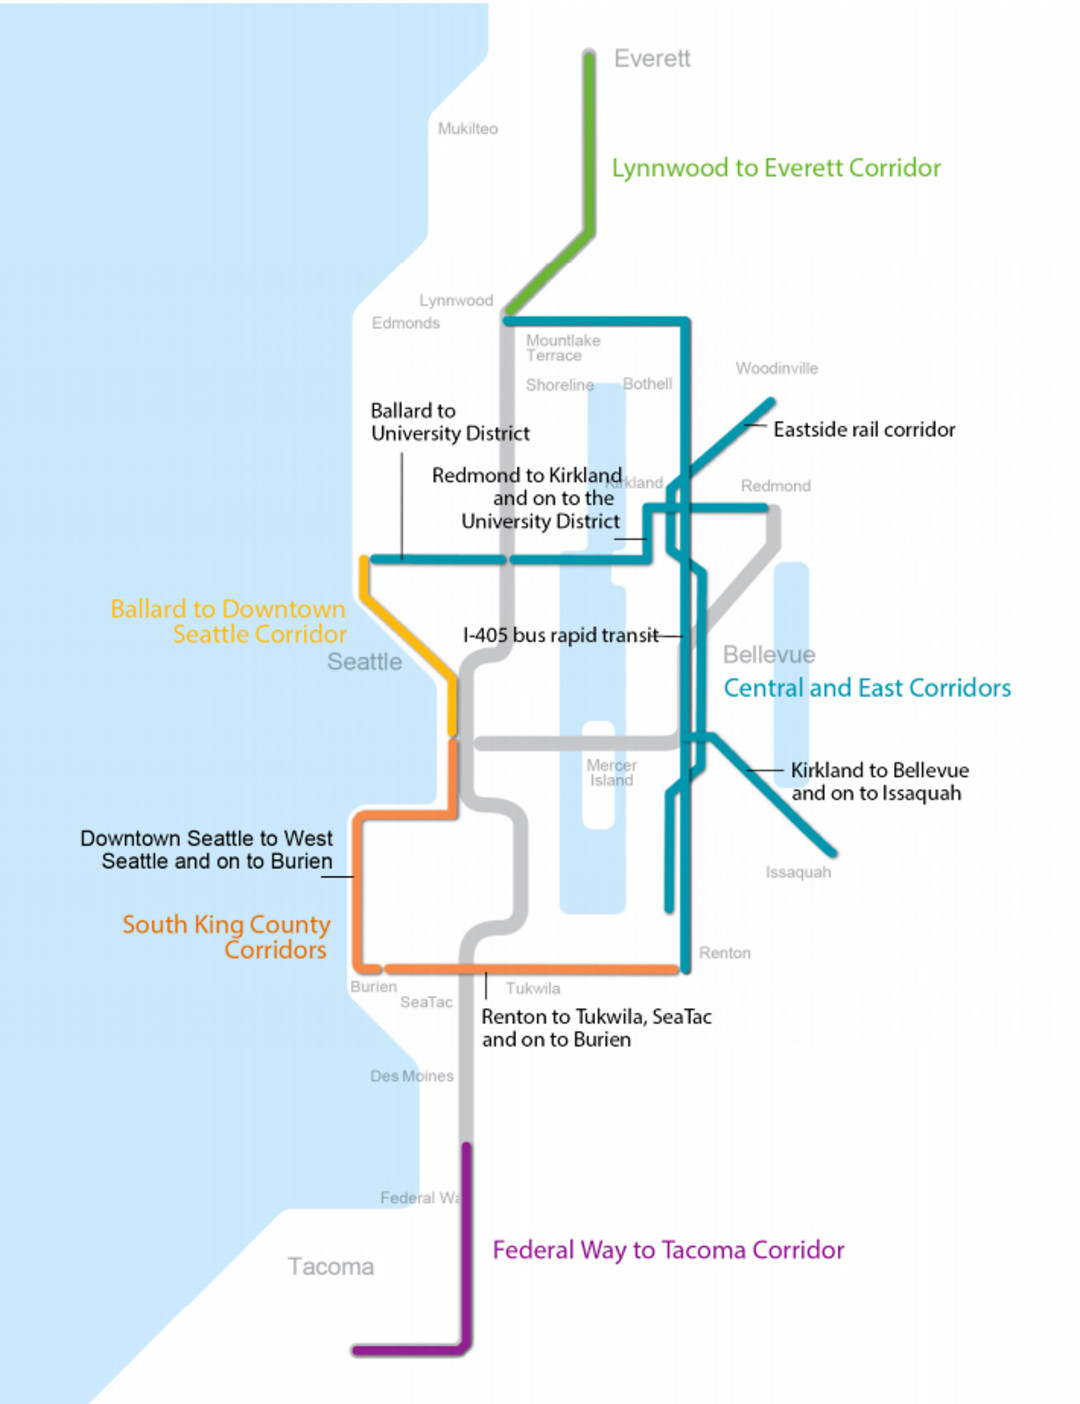 how to bring more light rail to seattle, in four not-so-easy steps